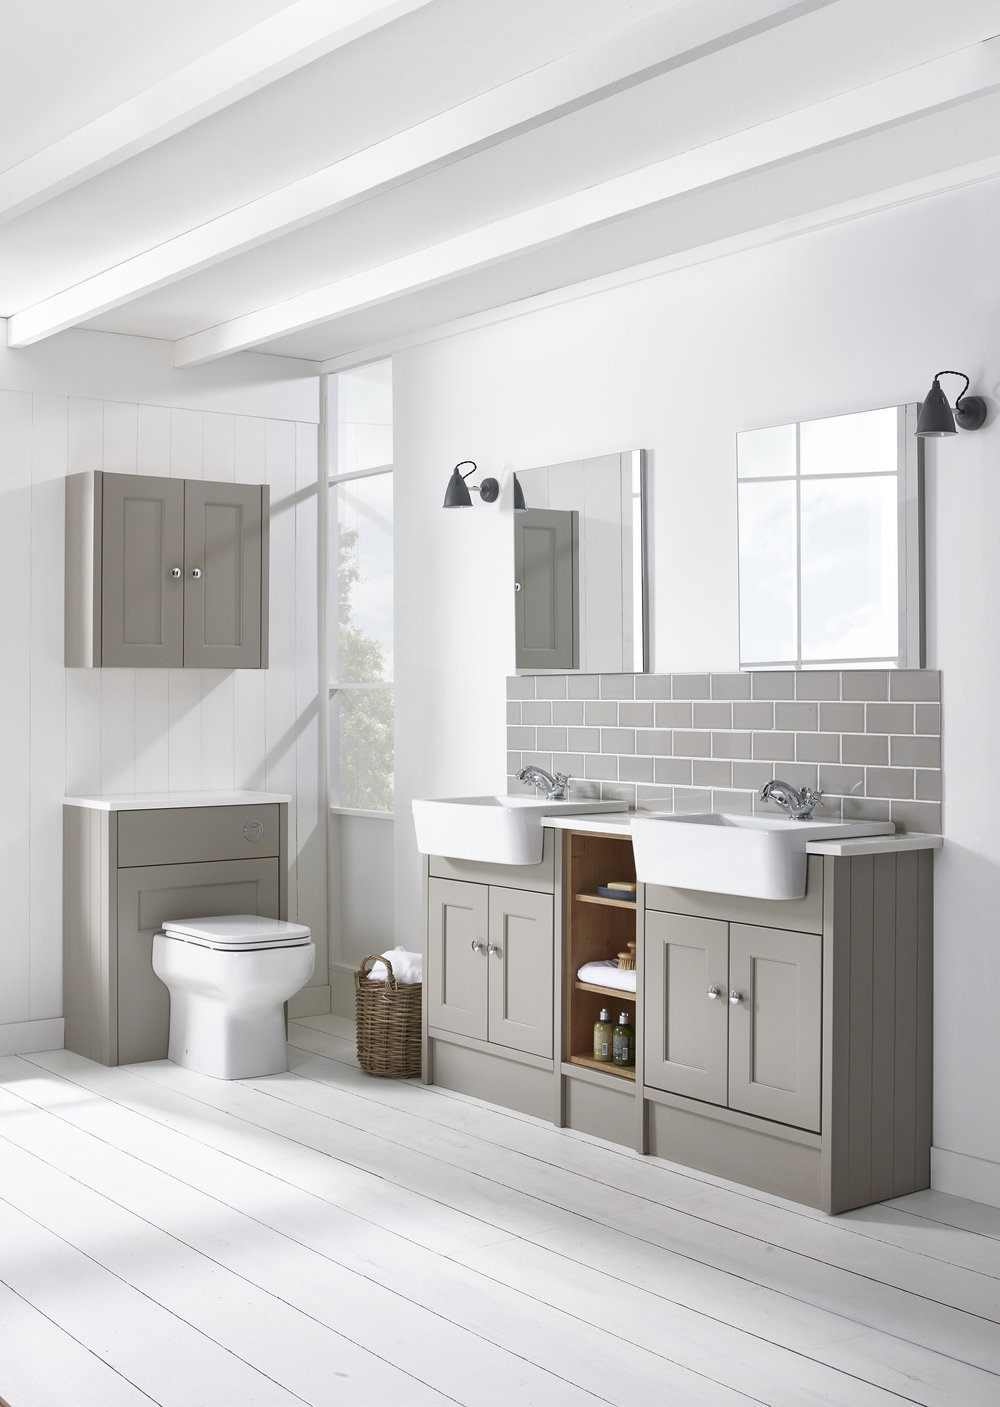 Burford  - The muted tone of Burford mocha fitted furniture adds to its timeless appeal. A classic and comprehensive range designed to suit any bathroom.